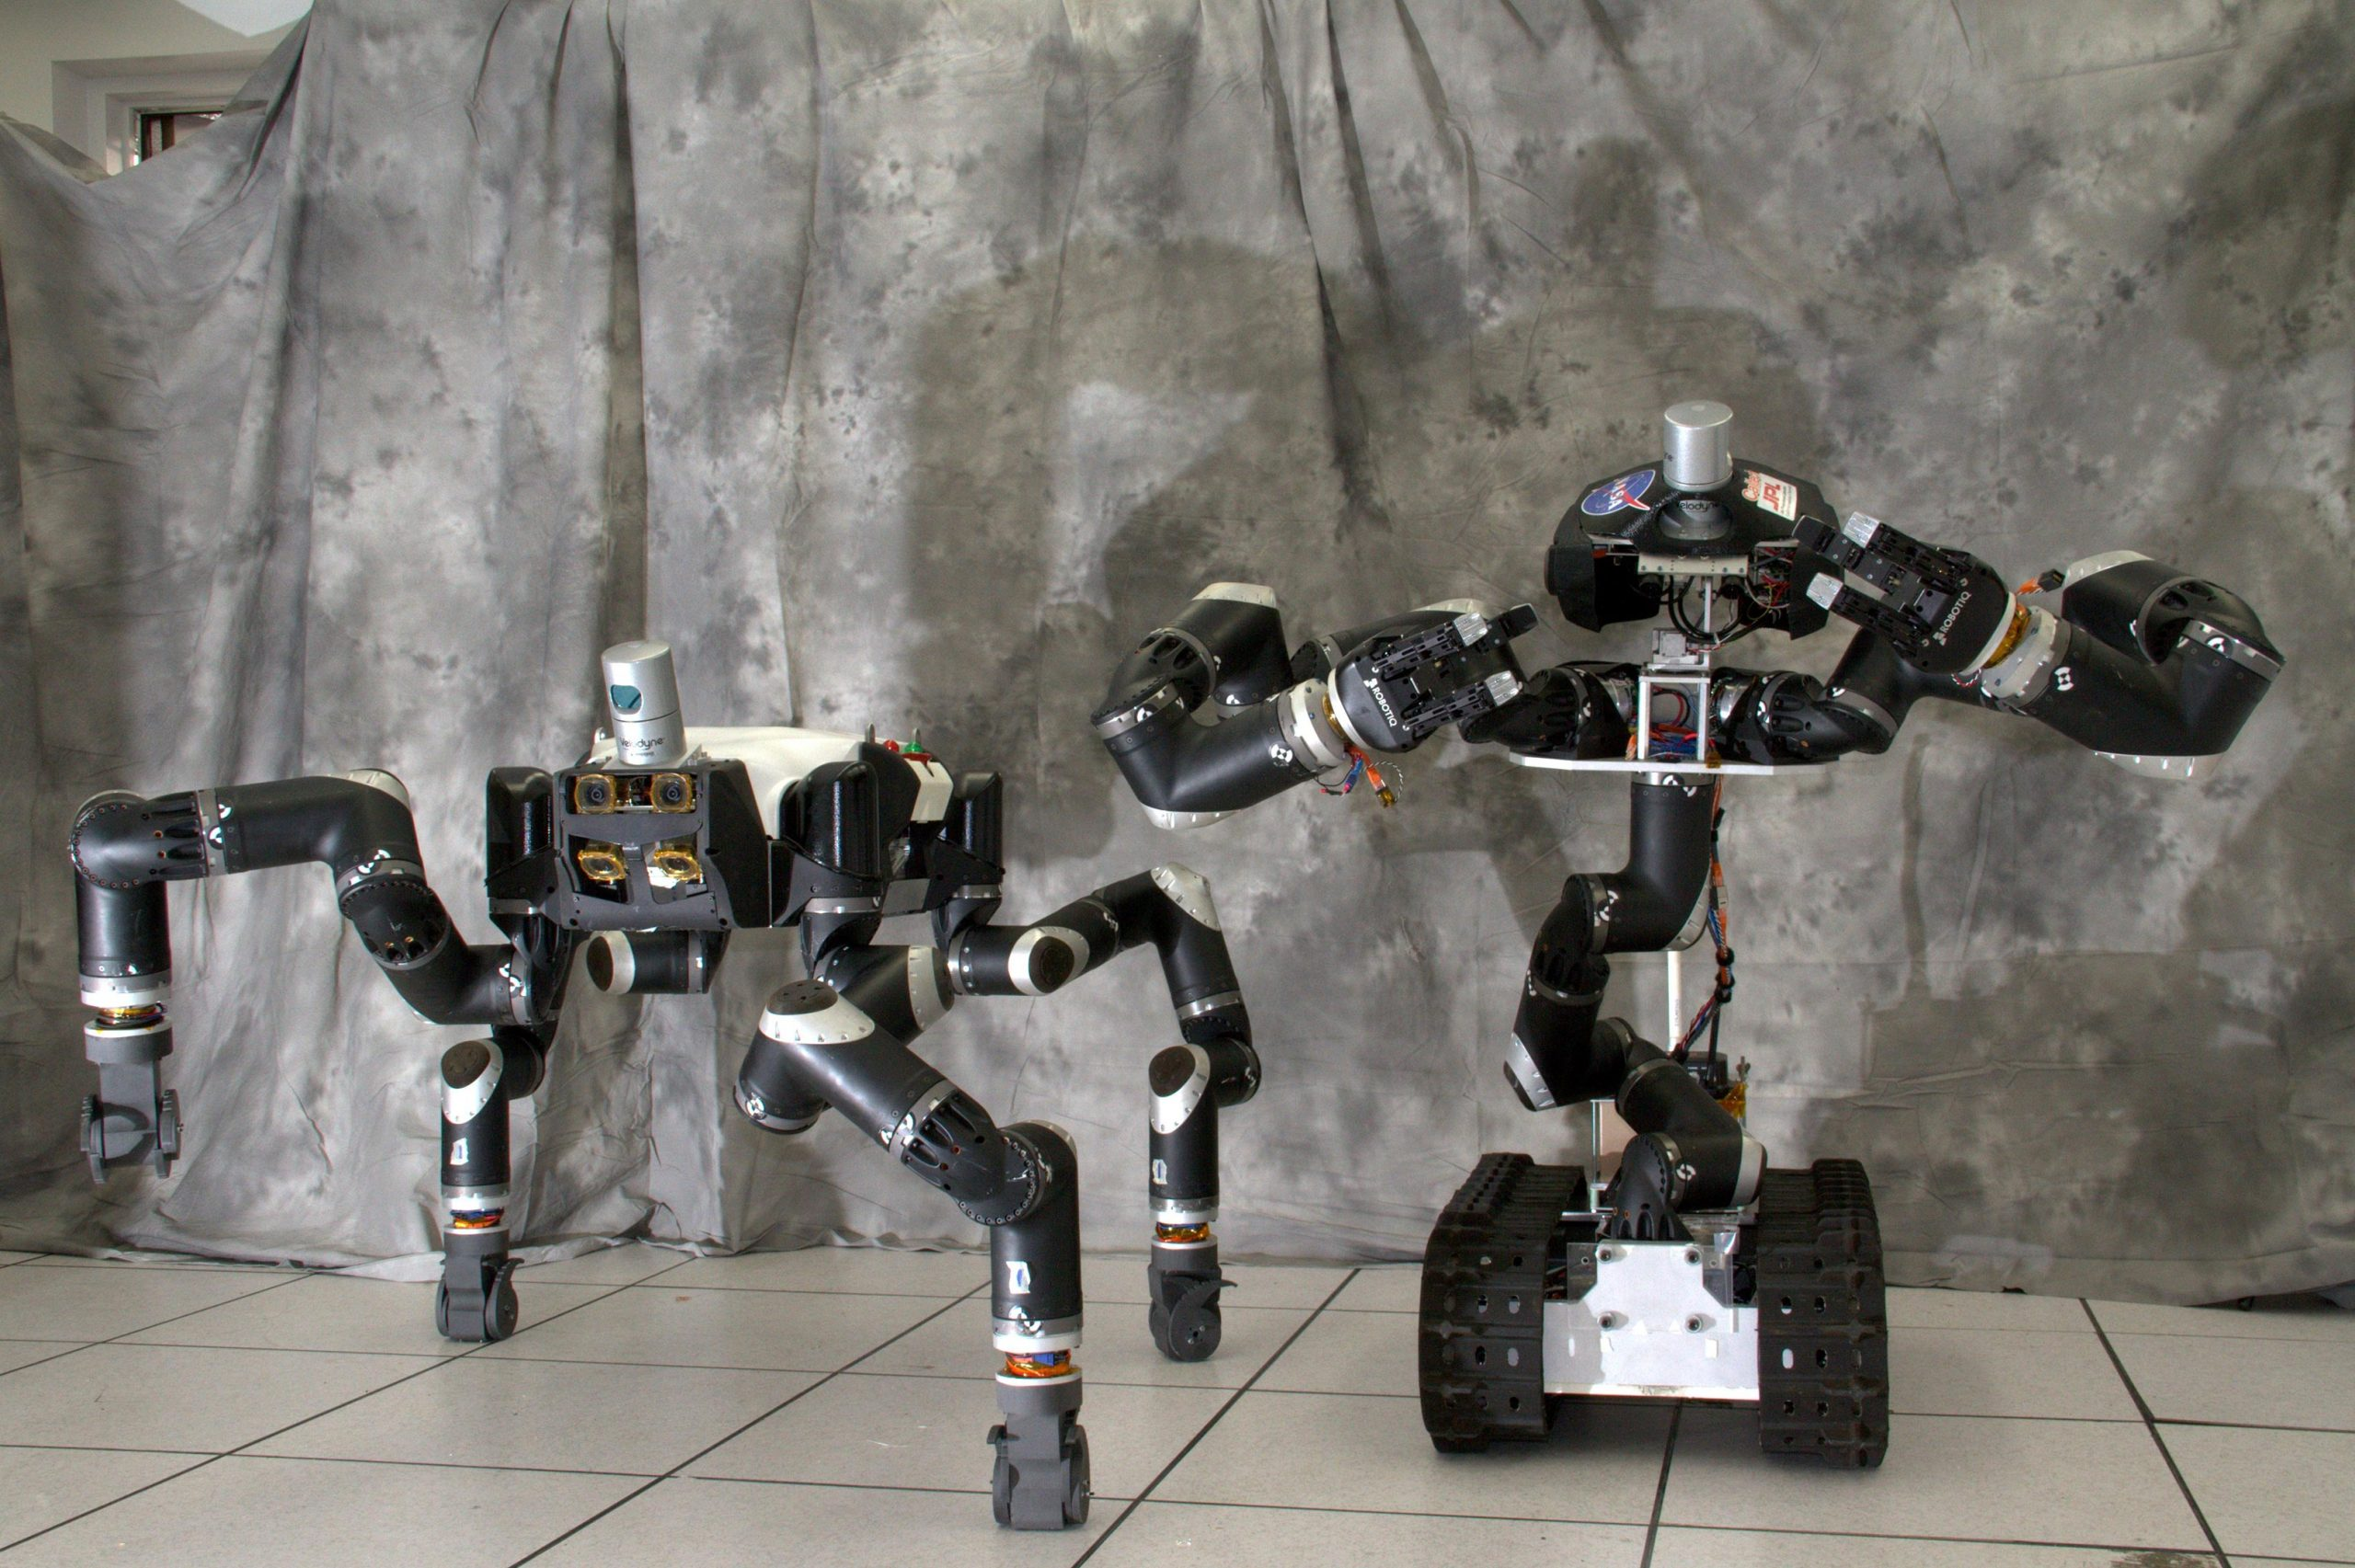 NASA's Jet Propulsion Laboratory: Creating Robots to Go Where Humans Can't